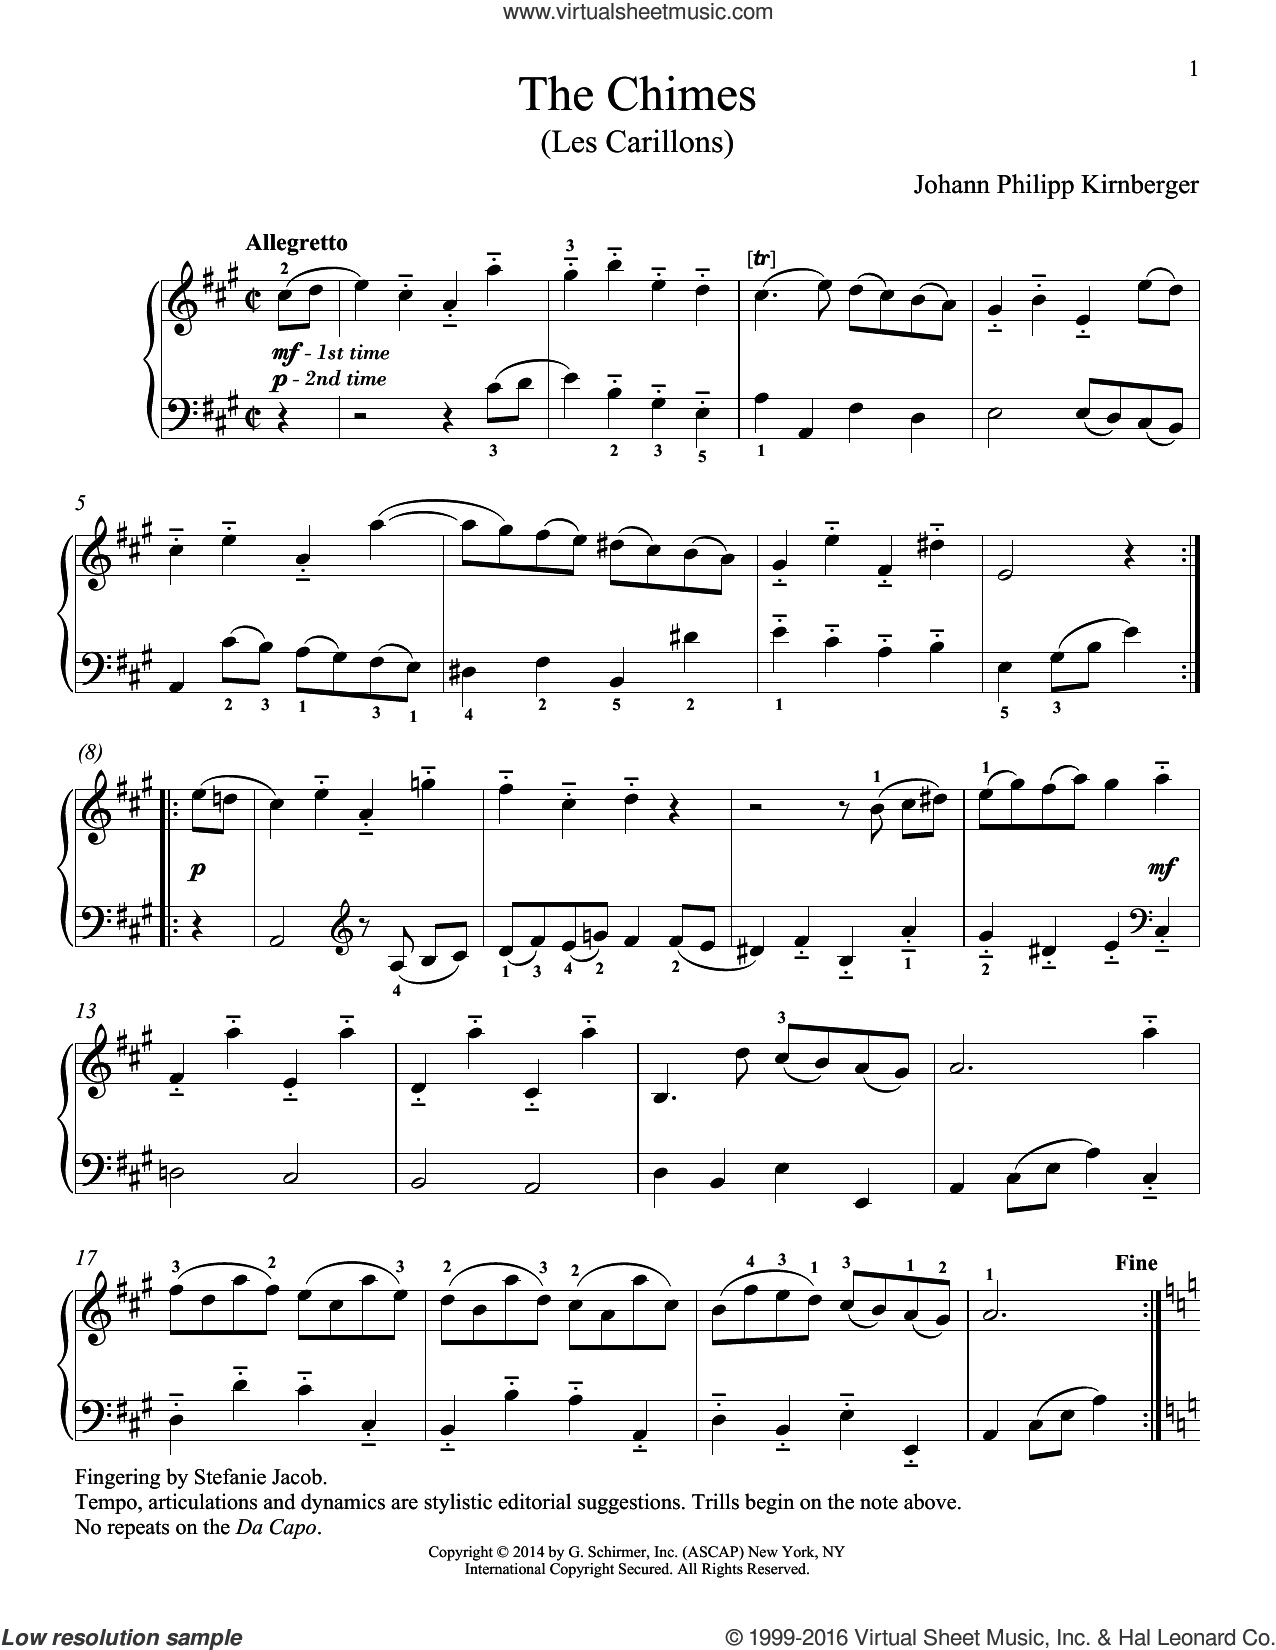 Les Carillons sheet music for piano solo by Richard Walters and Johann Philipp Kirnberger, classical score, intermediate skill level